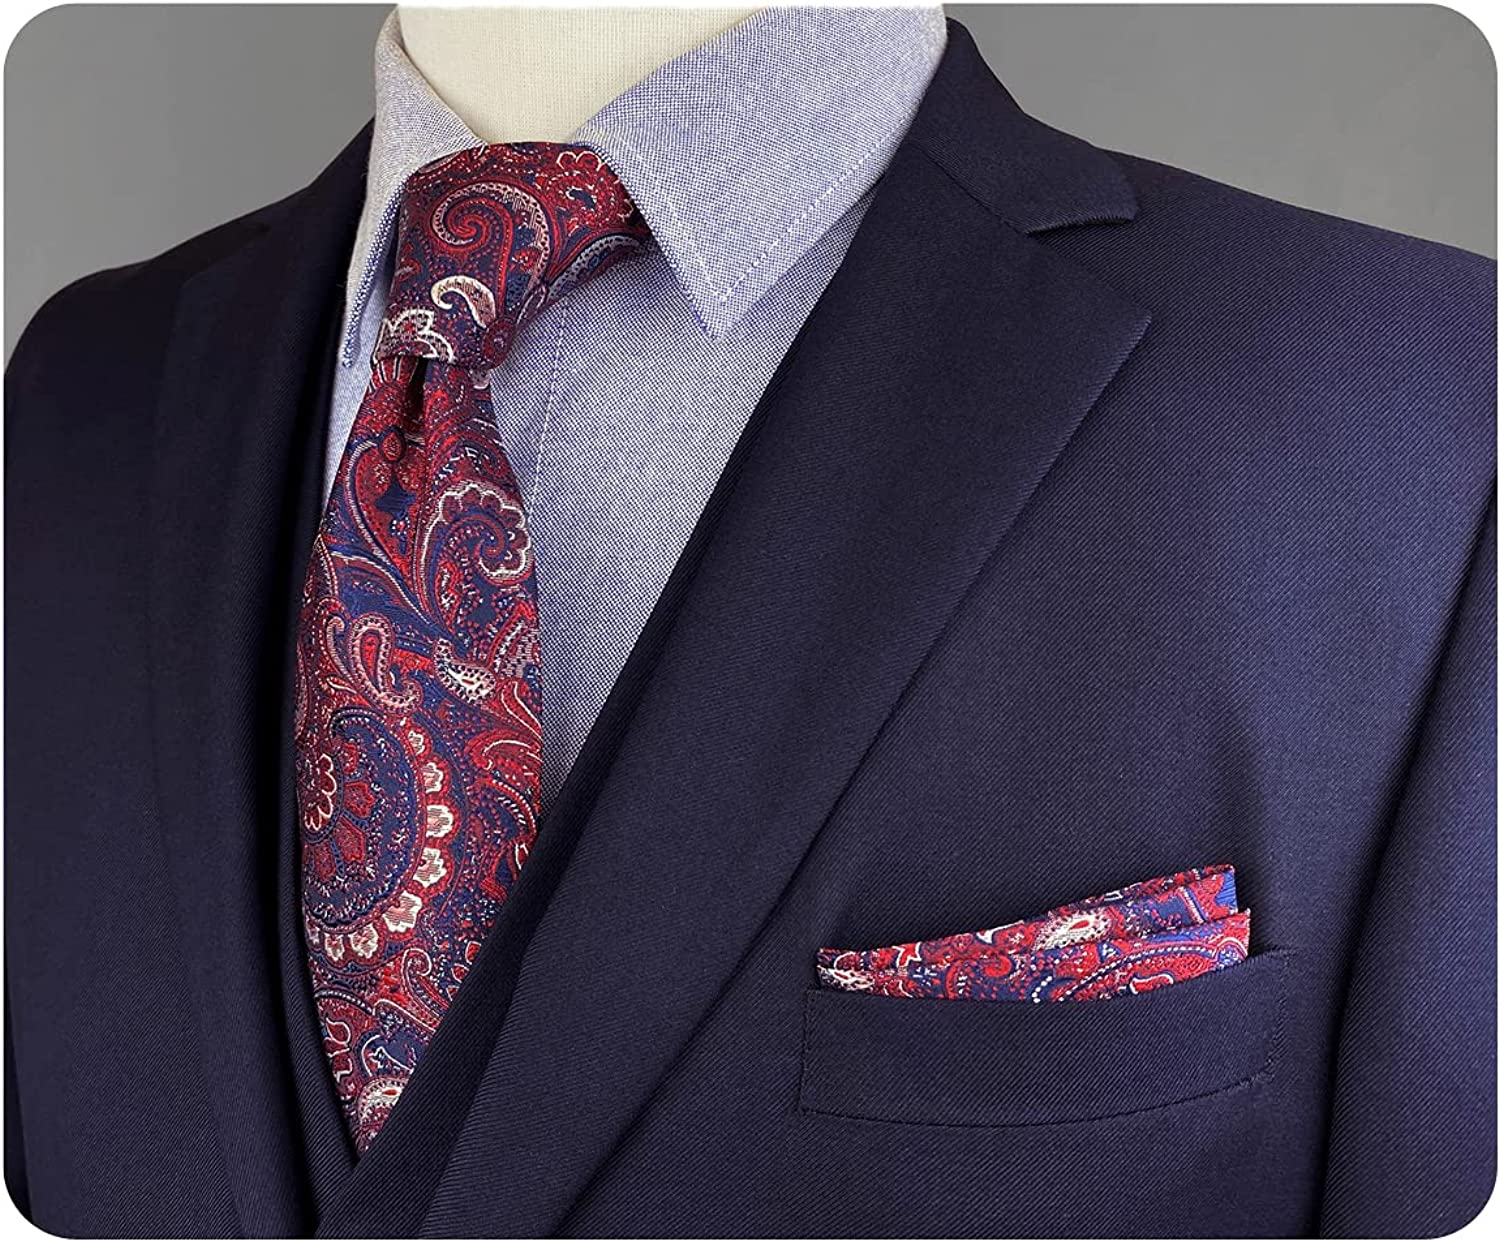 S&W SHLAX&WING Mens Tie Mens Dress Neckties Steel Blue Navy and Red